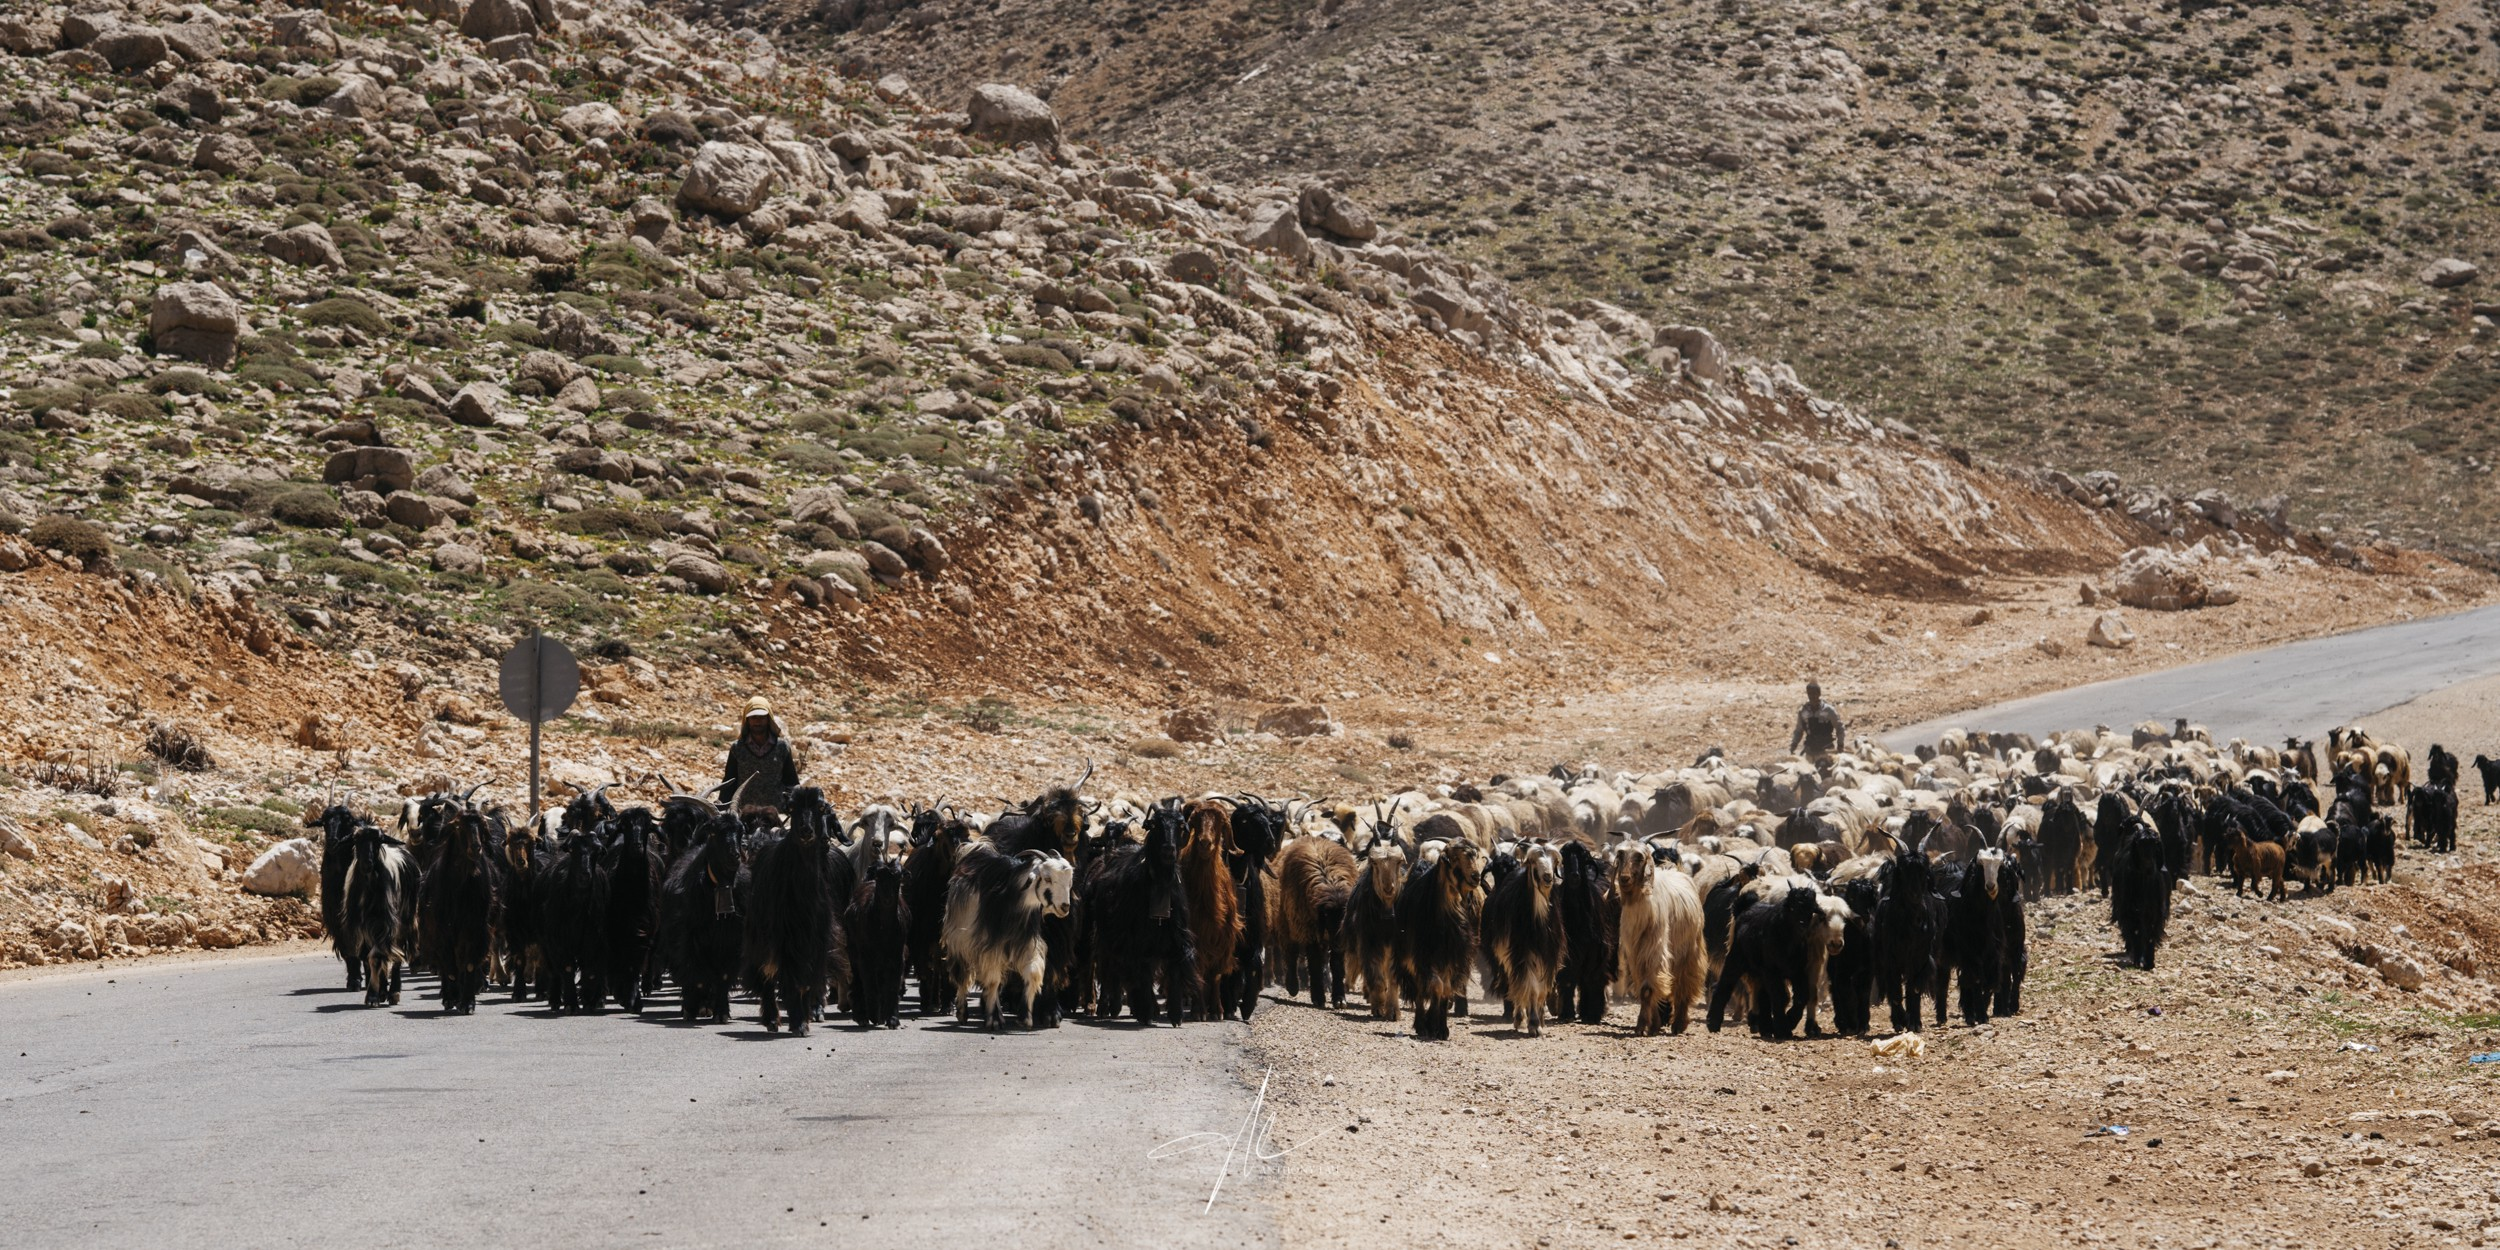 A massive flock of sheep and their Qashqai shepherds passing through the mountain highway.